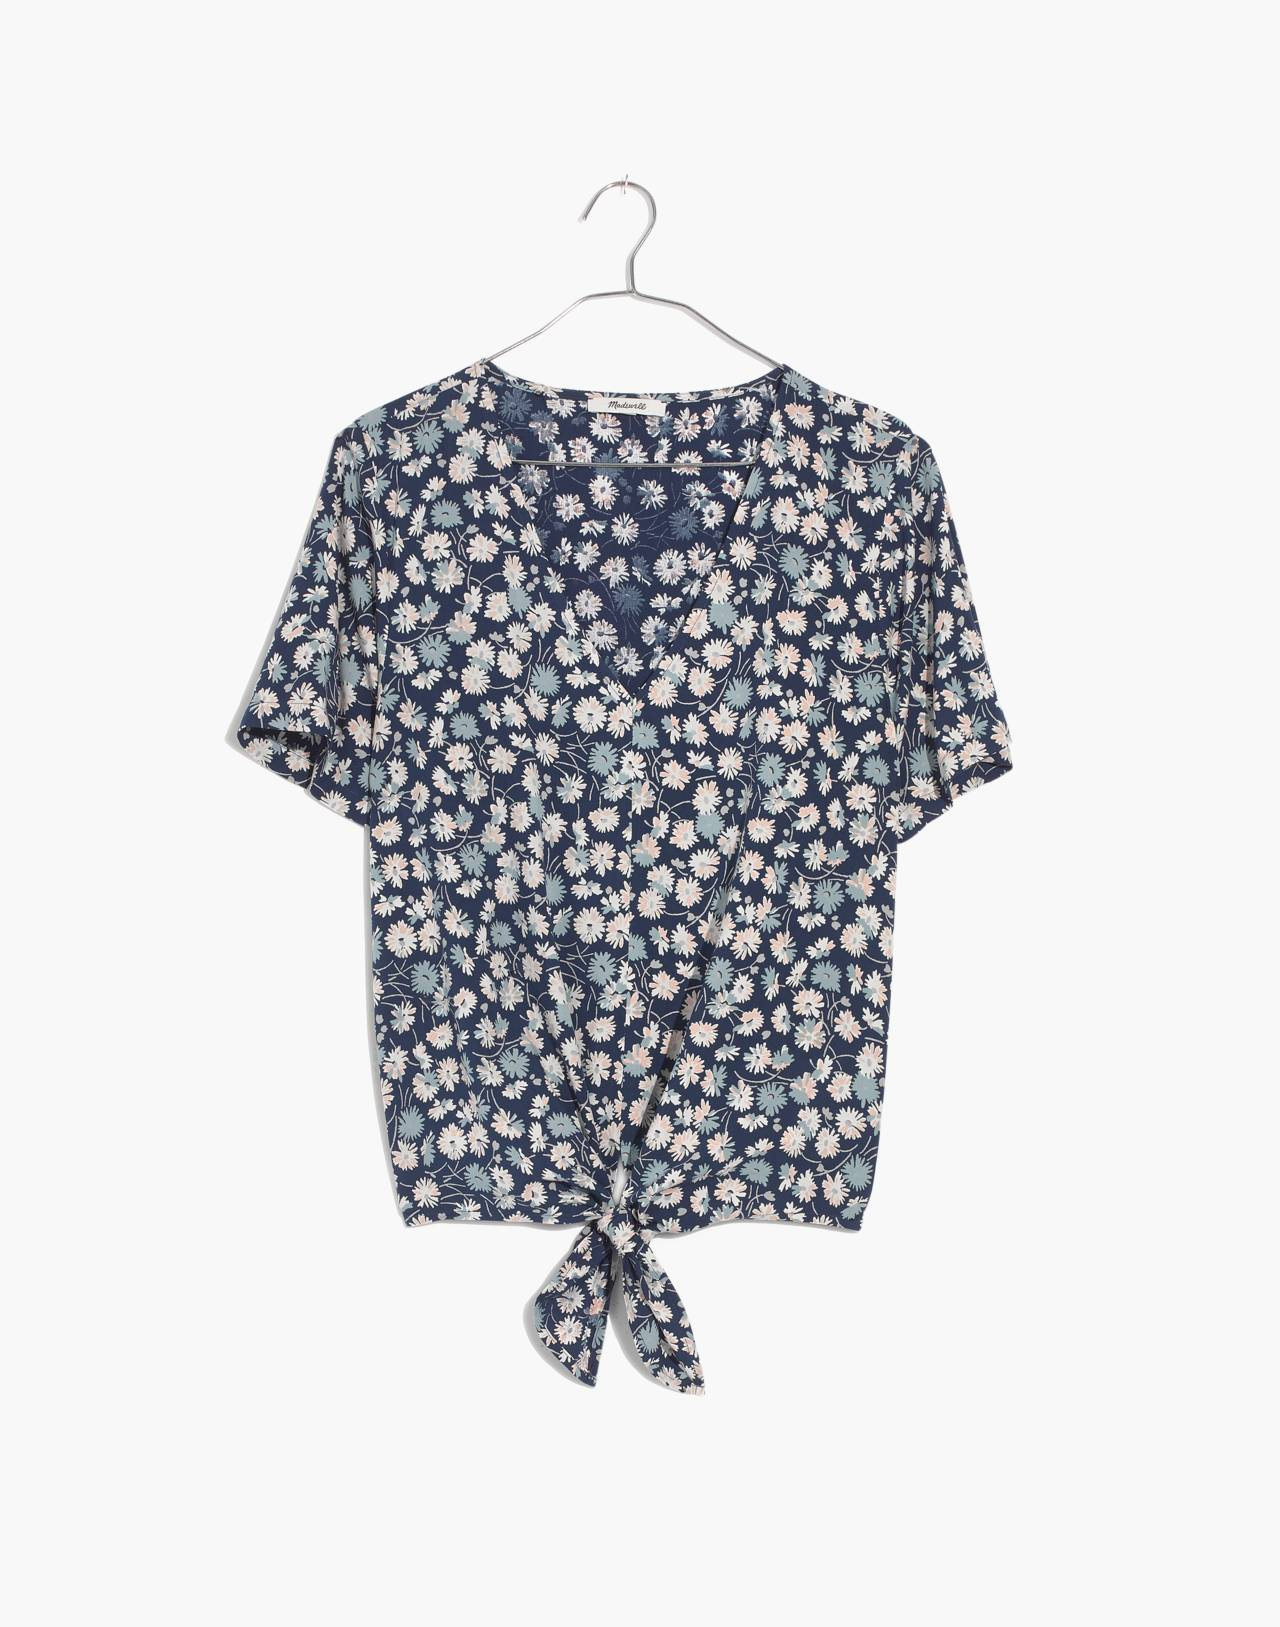 Novel Tie-Front Top in French Floral in french floral blue moon image 4